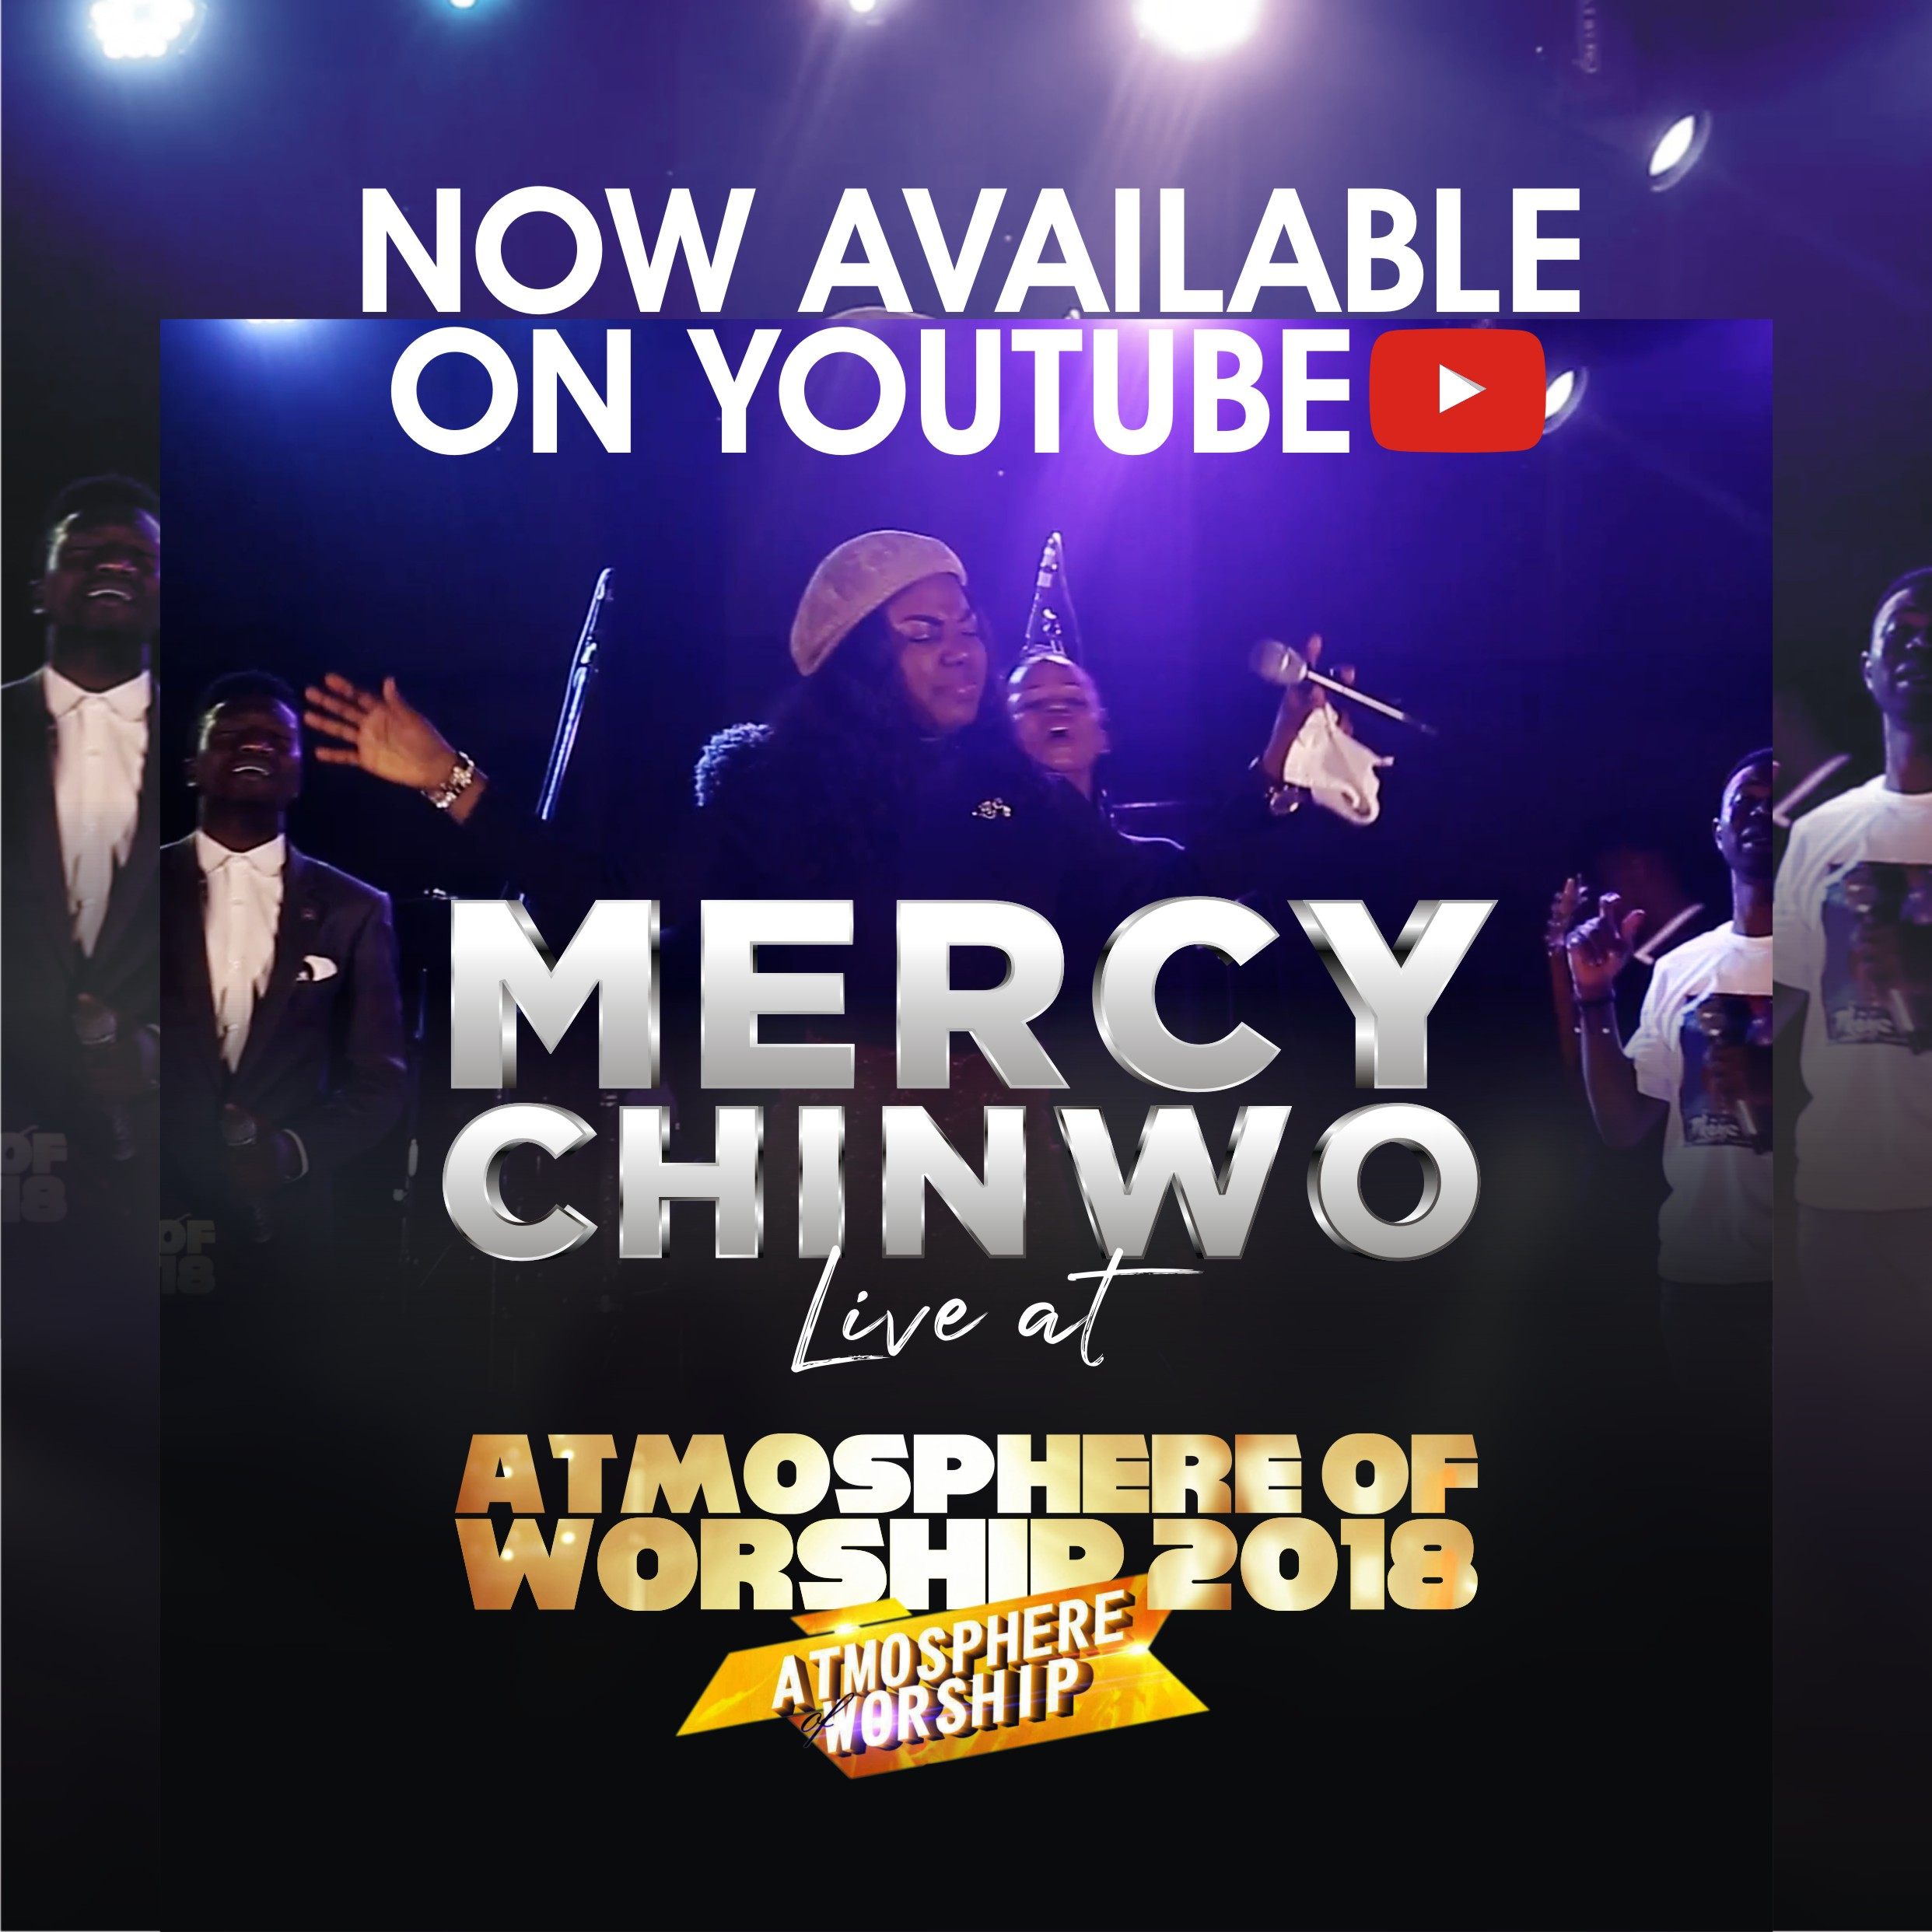 Mercy Chinwo Atmosphere